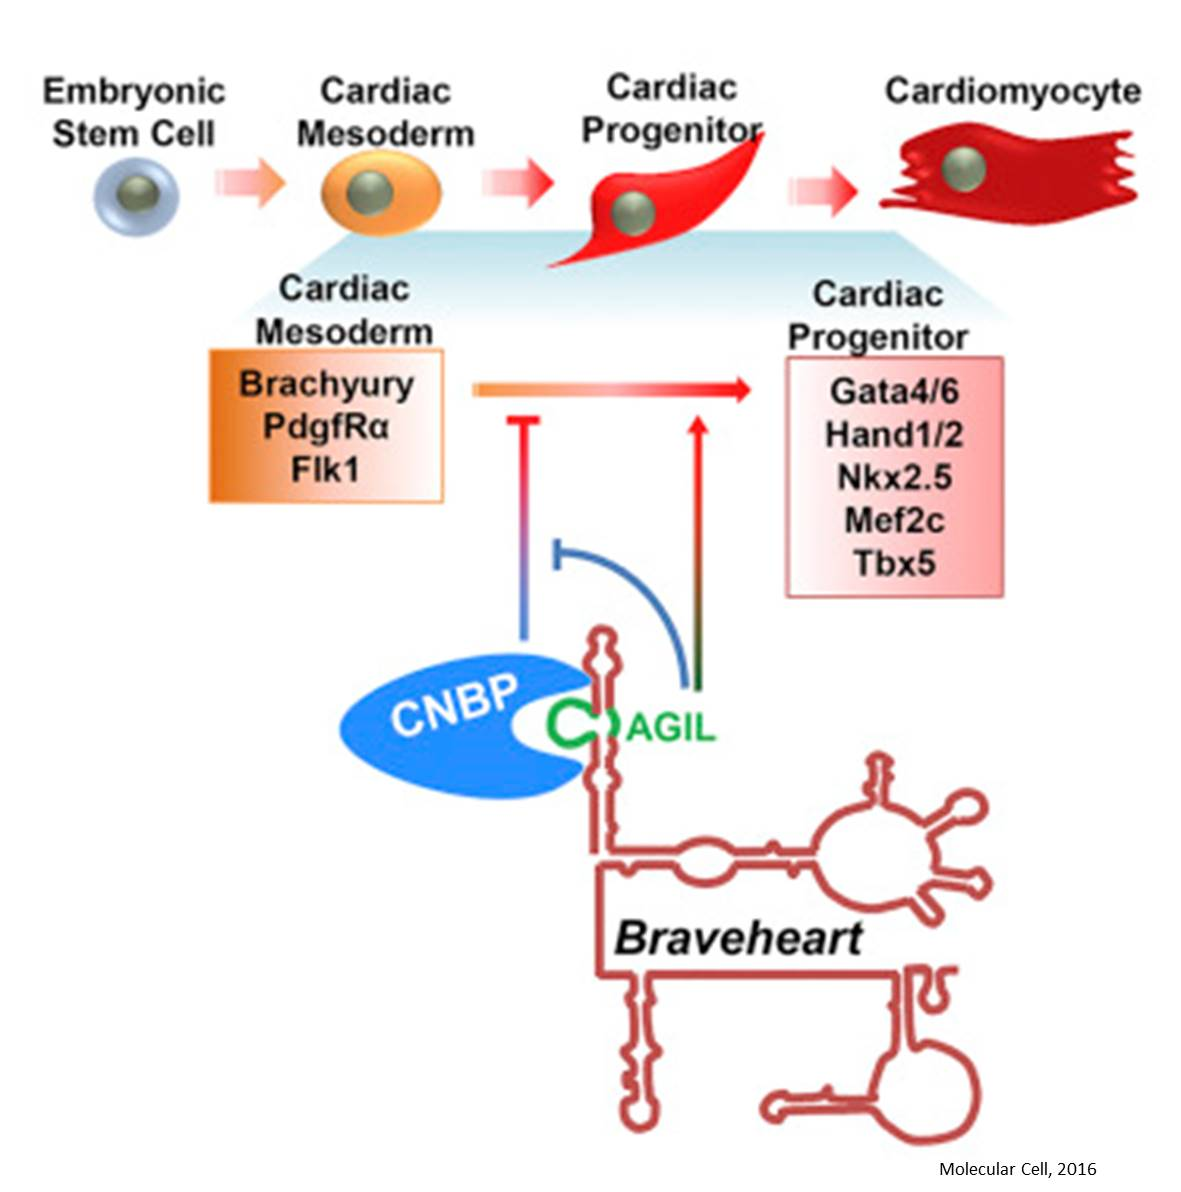 Role of long noncoding RNA in cardiac development